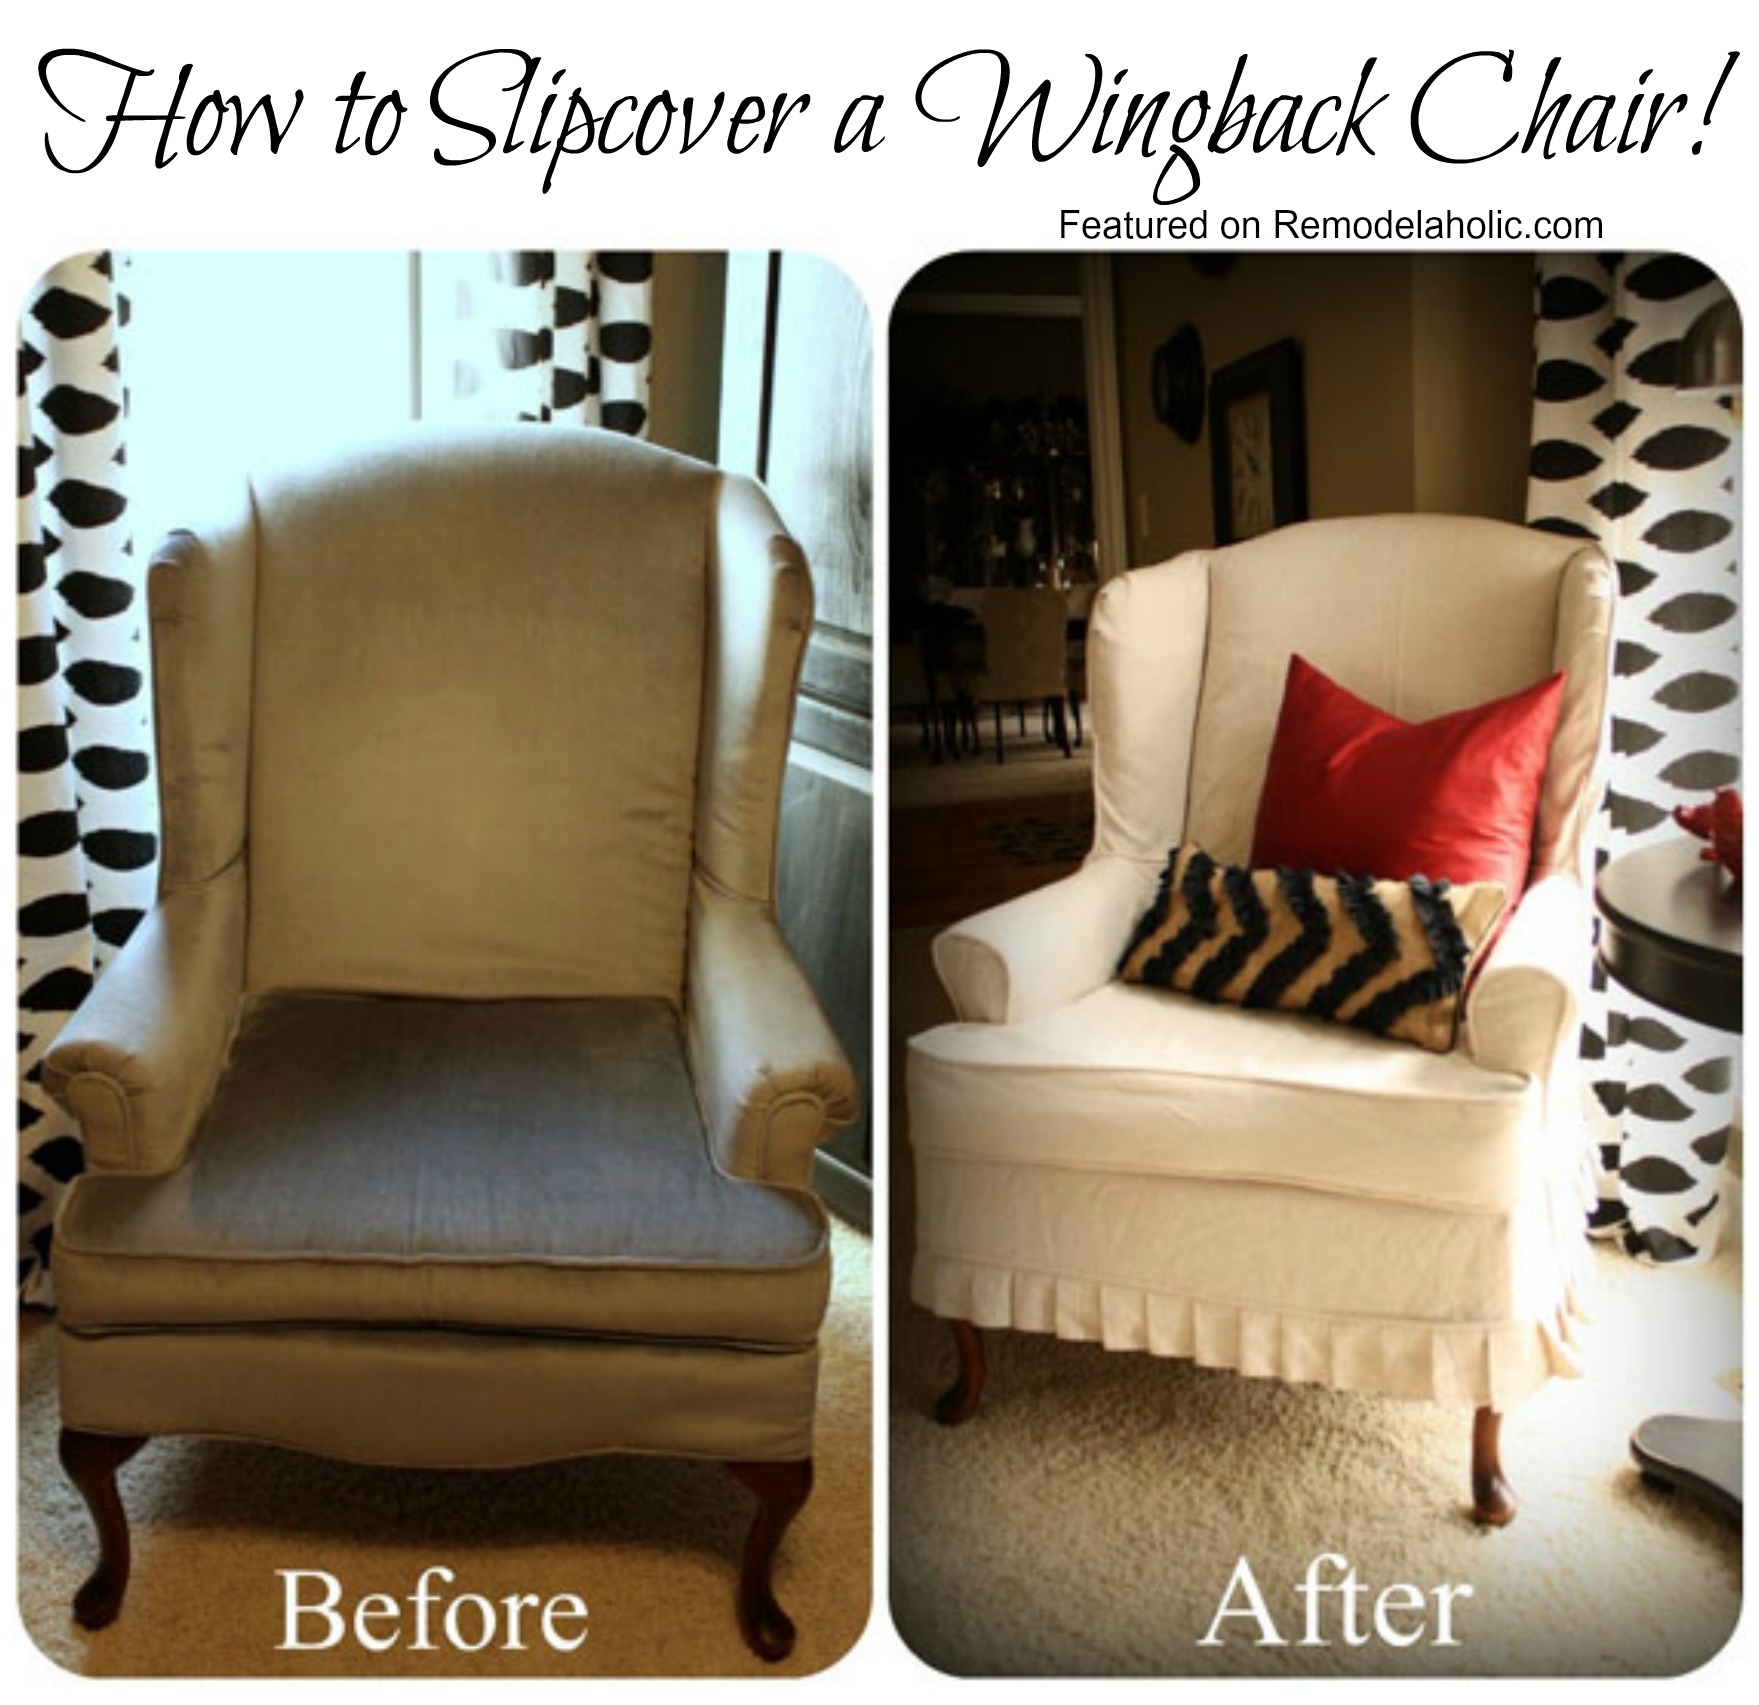 Remodelaholic Slipcovered Wingback Chairthat I want